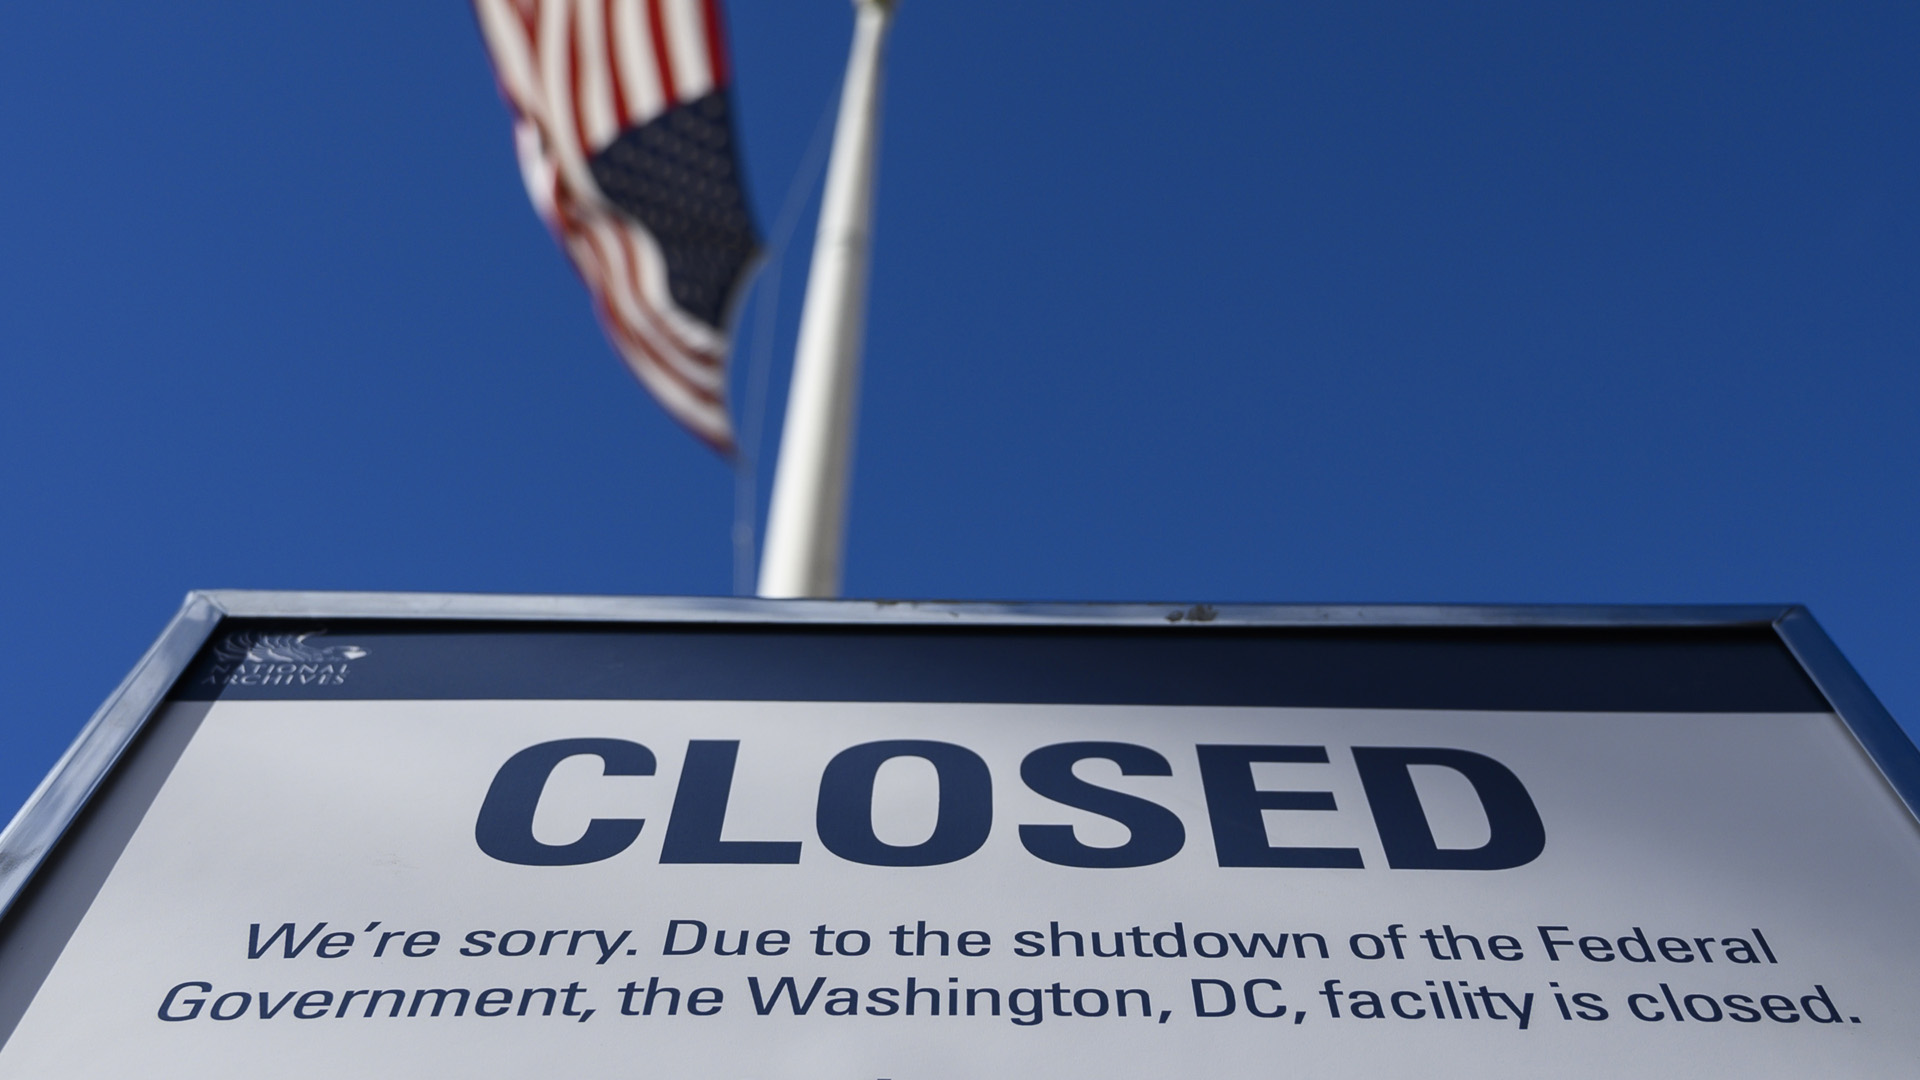 A sign is displayed on a government building that is closed because of a government shutdown in Washington, DC, on December 22, 2018. (Credit: ANDREW CABALLERO-REYNOLDS/AFP/Getty Images)